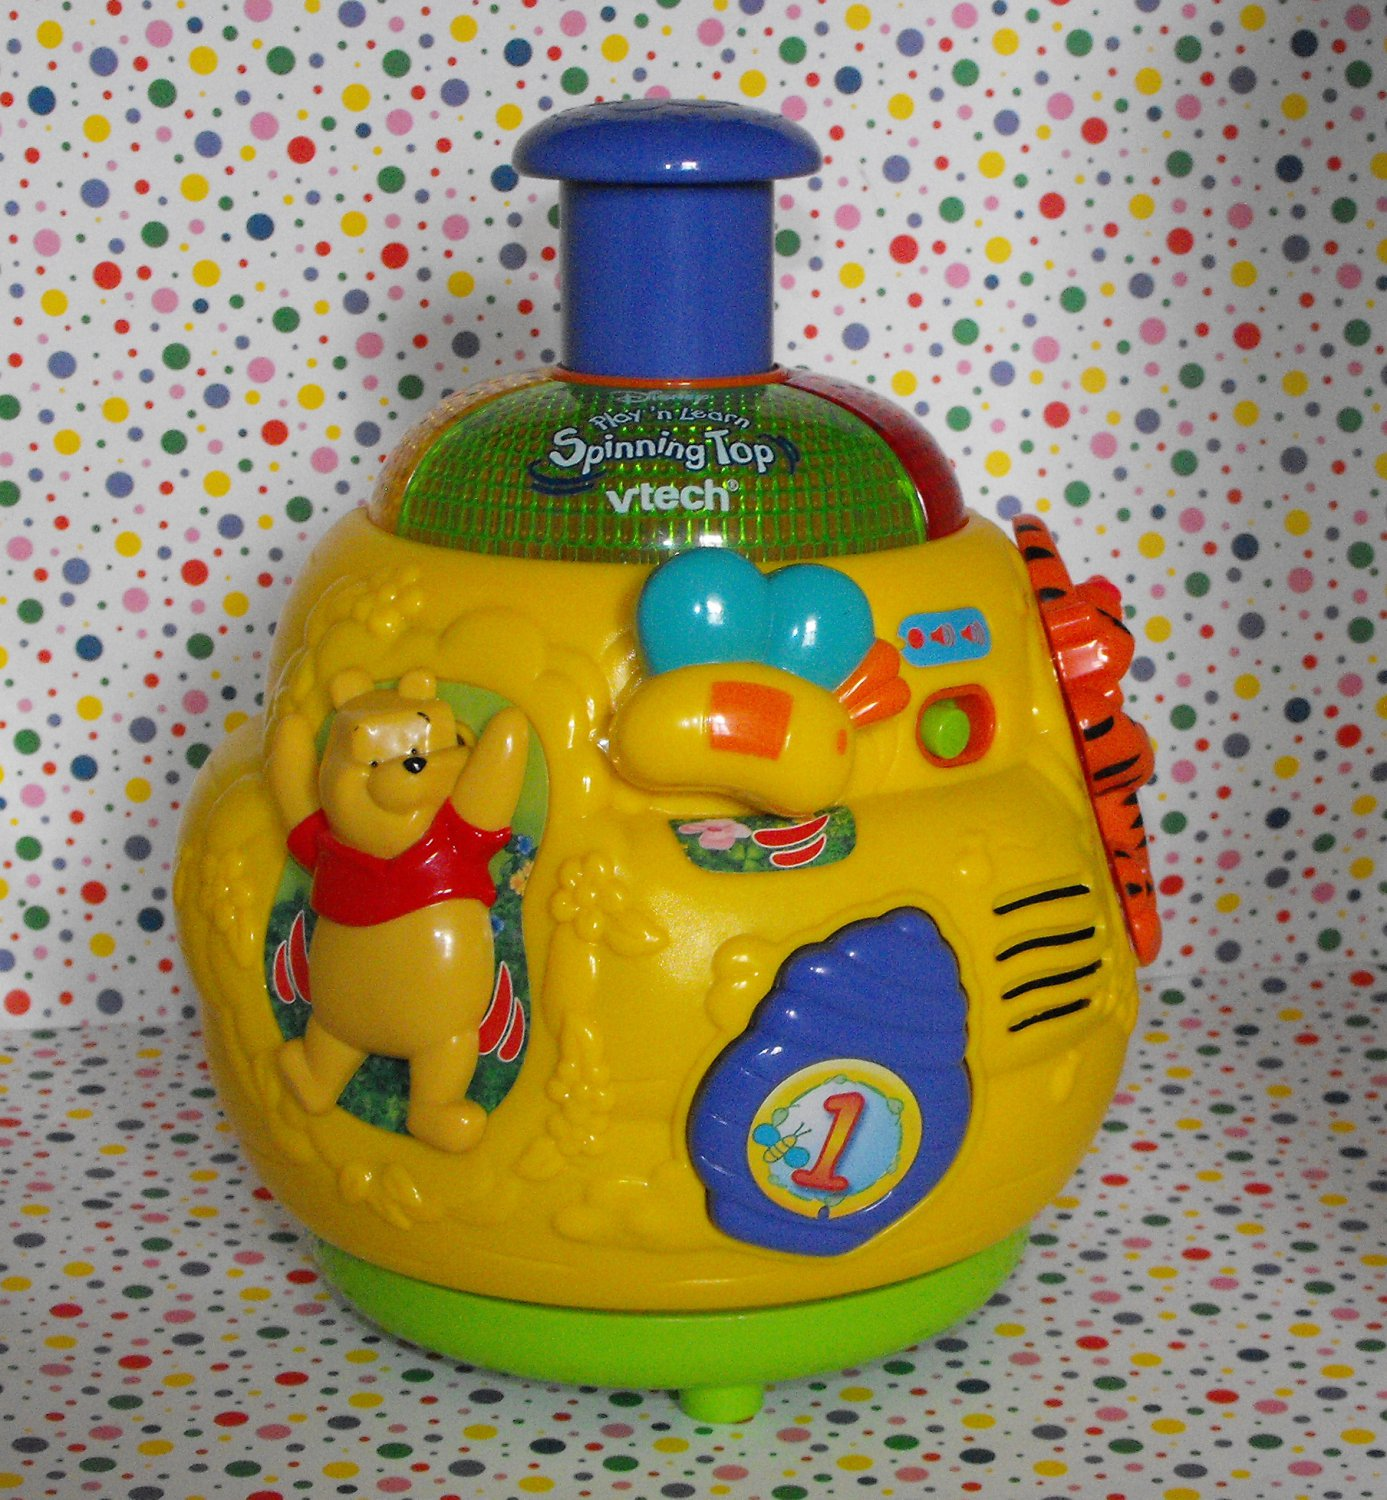 VTech Winnie The Pooh Play 'n Learn Spinning Top